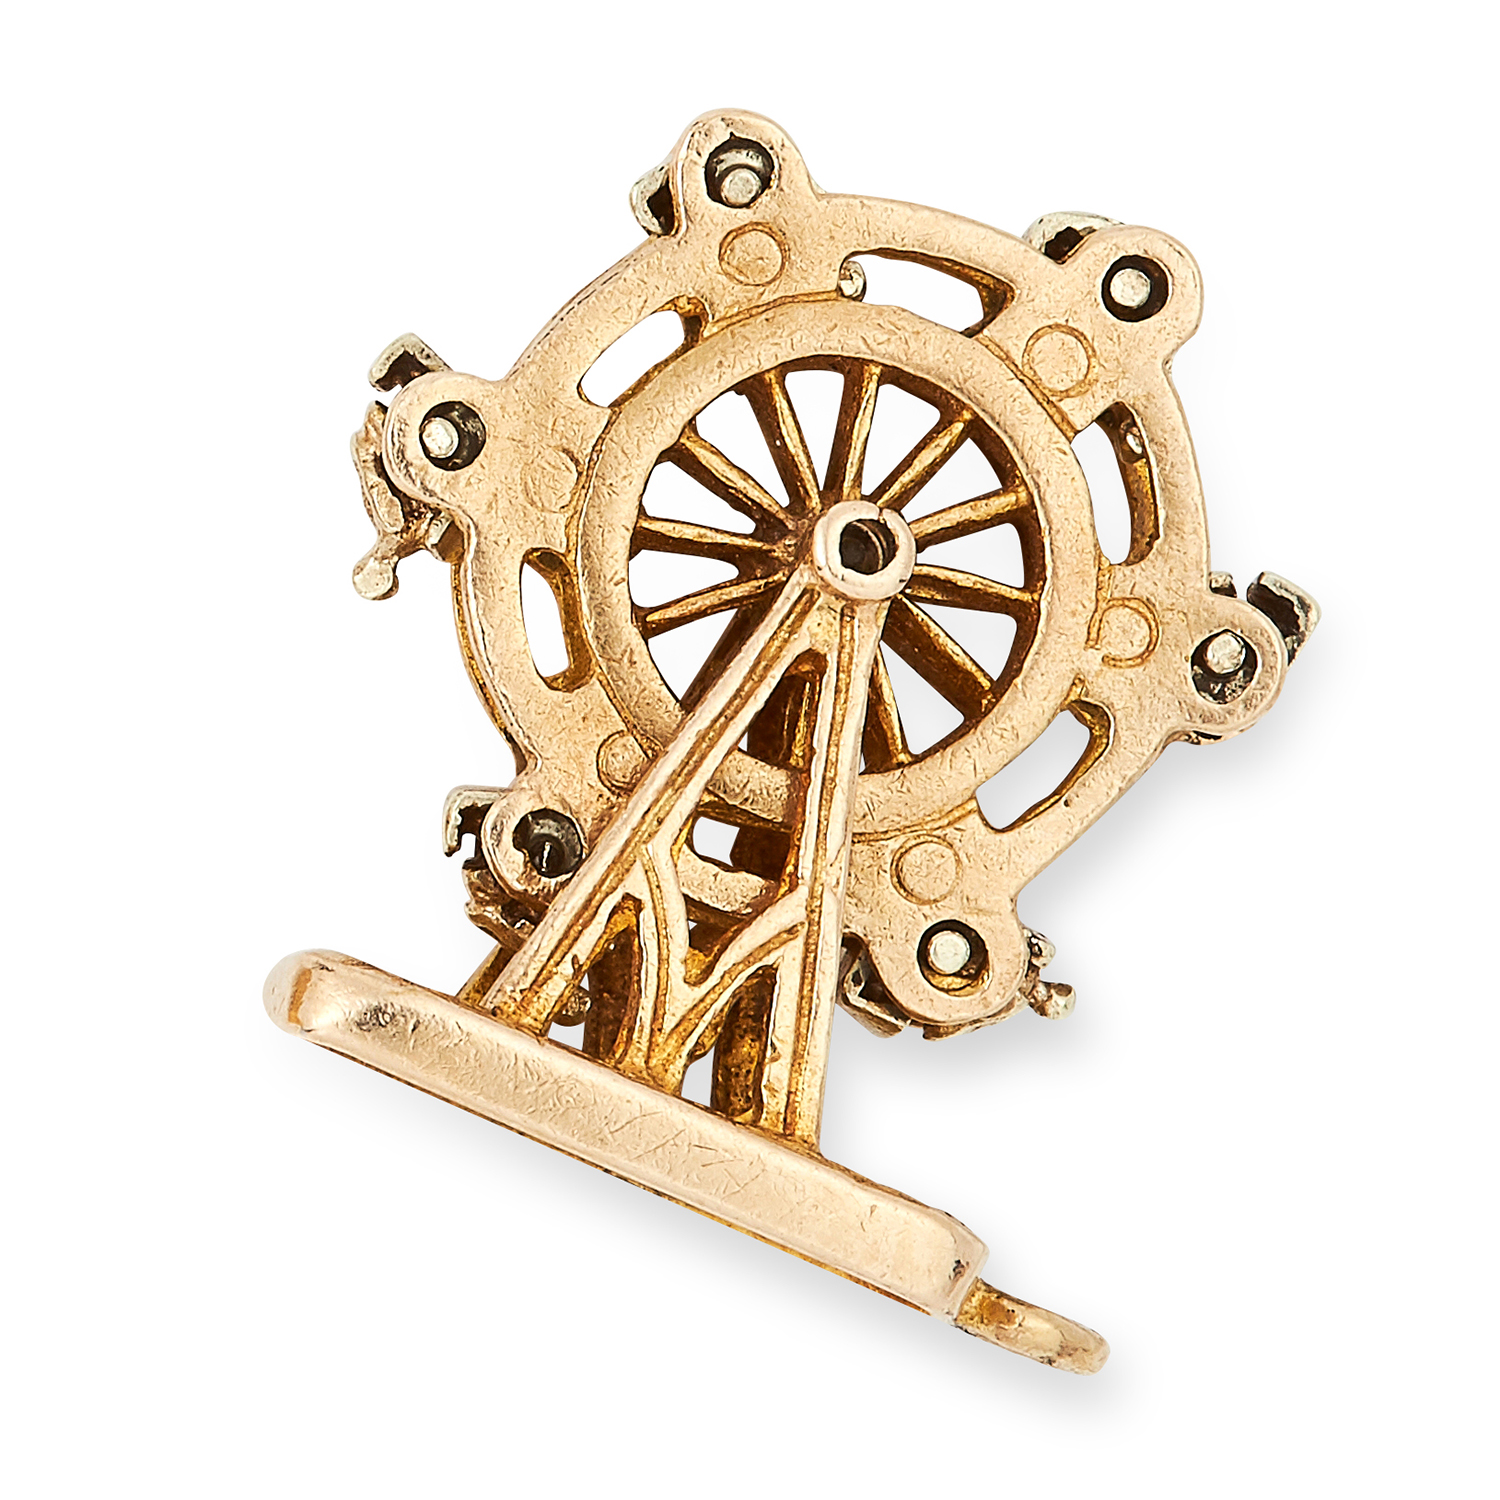 Los 39 - ARTICULATED FERRIS WHEEL CHARM / PENDANT with moving wheel and seats, 1.9cm, 4.1g.